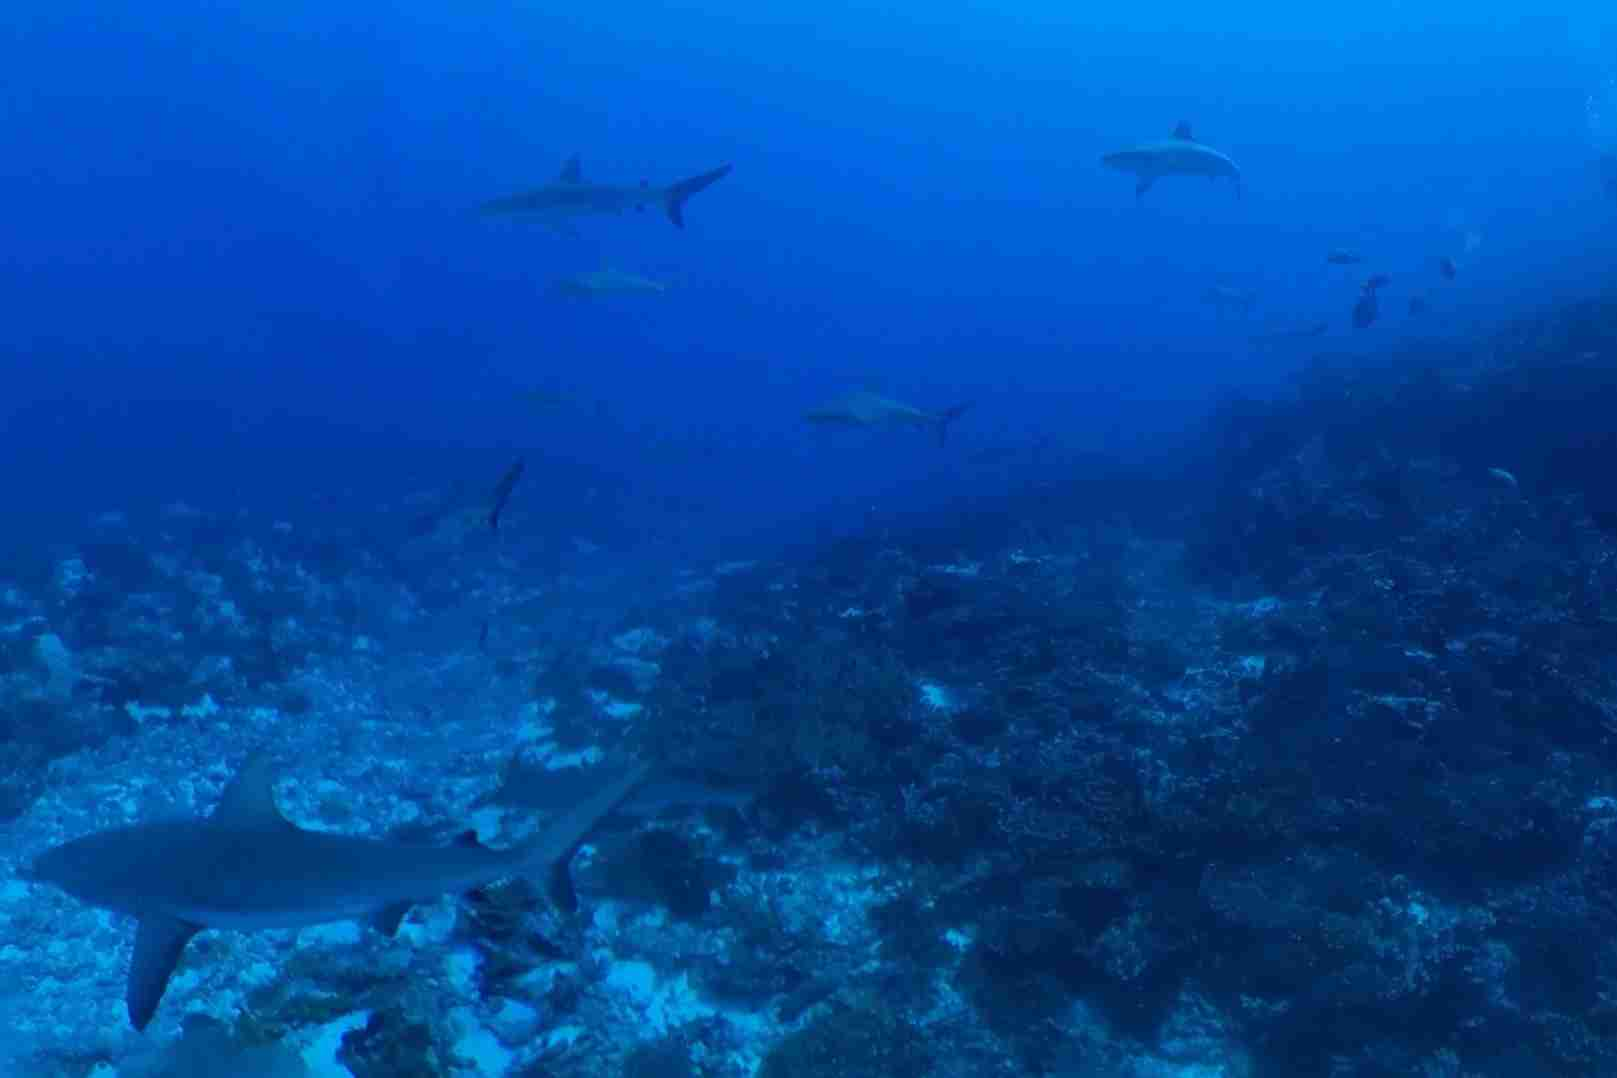 An irrational fear of shark could keep you from experiencing the wall of 400 reef shark in the south pass of the Fakarava Atoll in French Polynesia